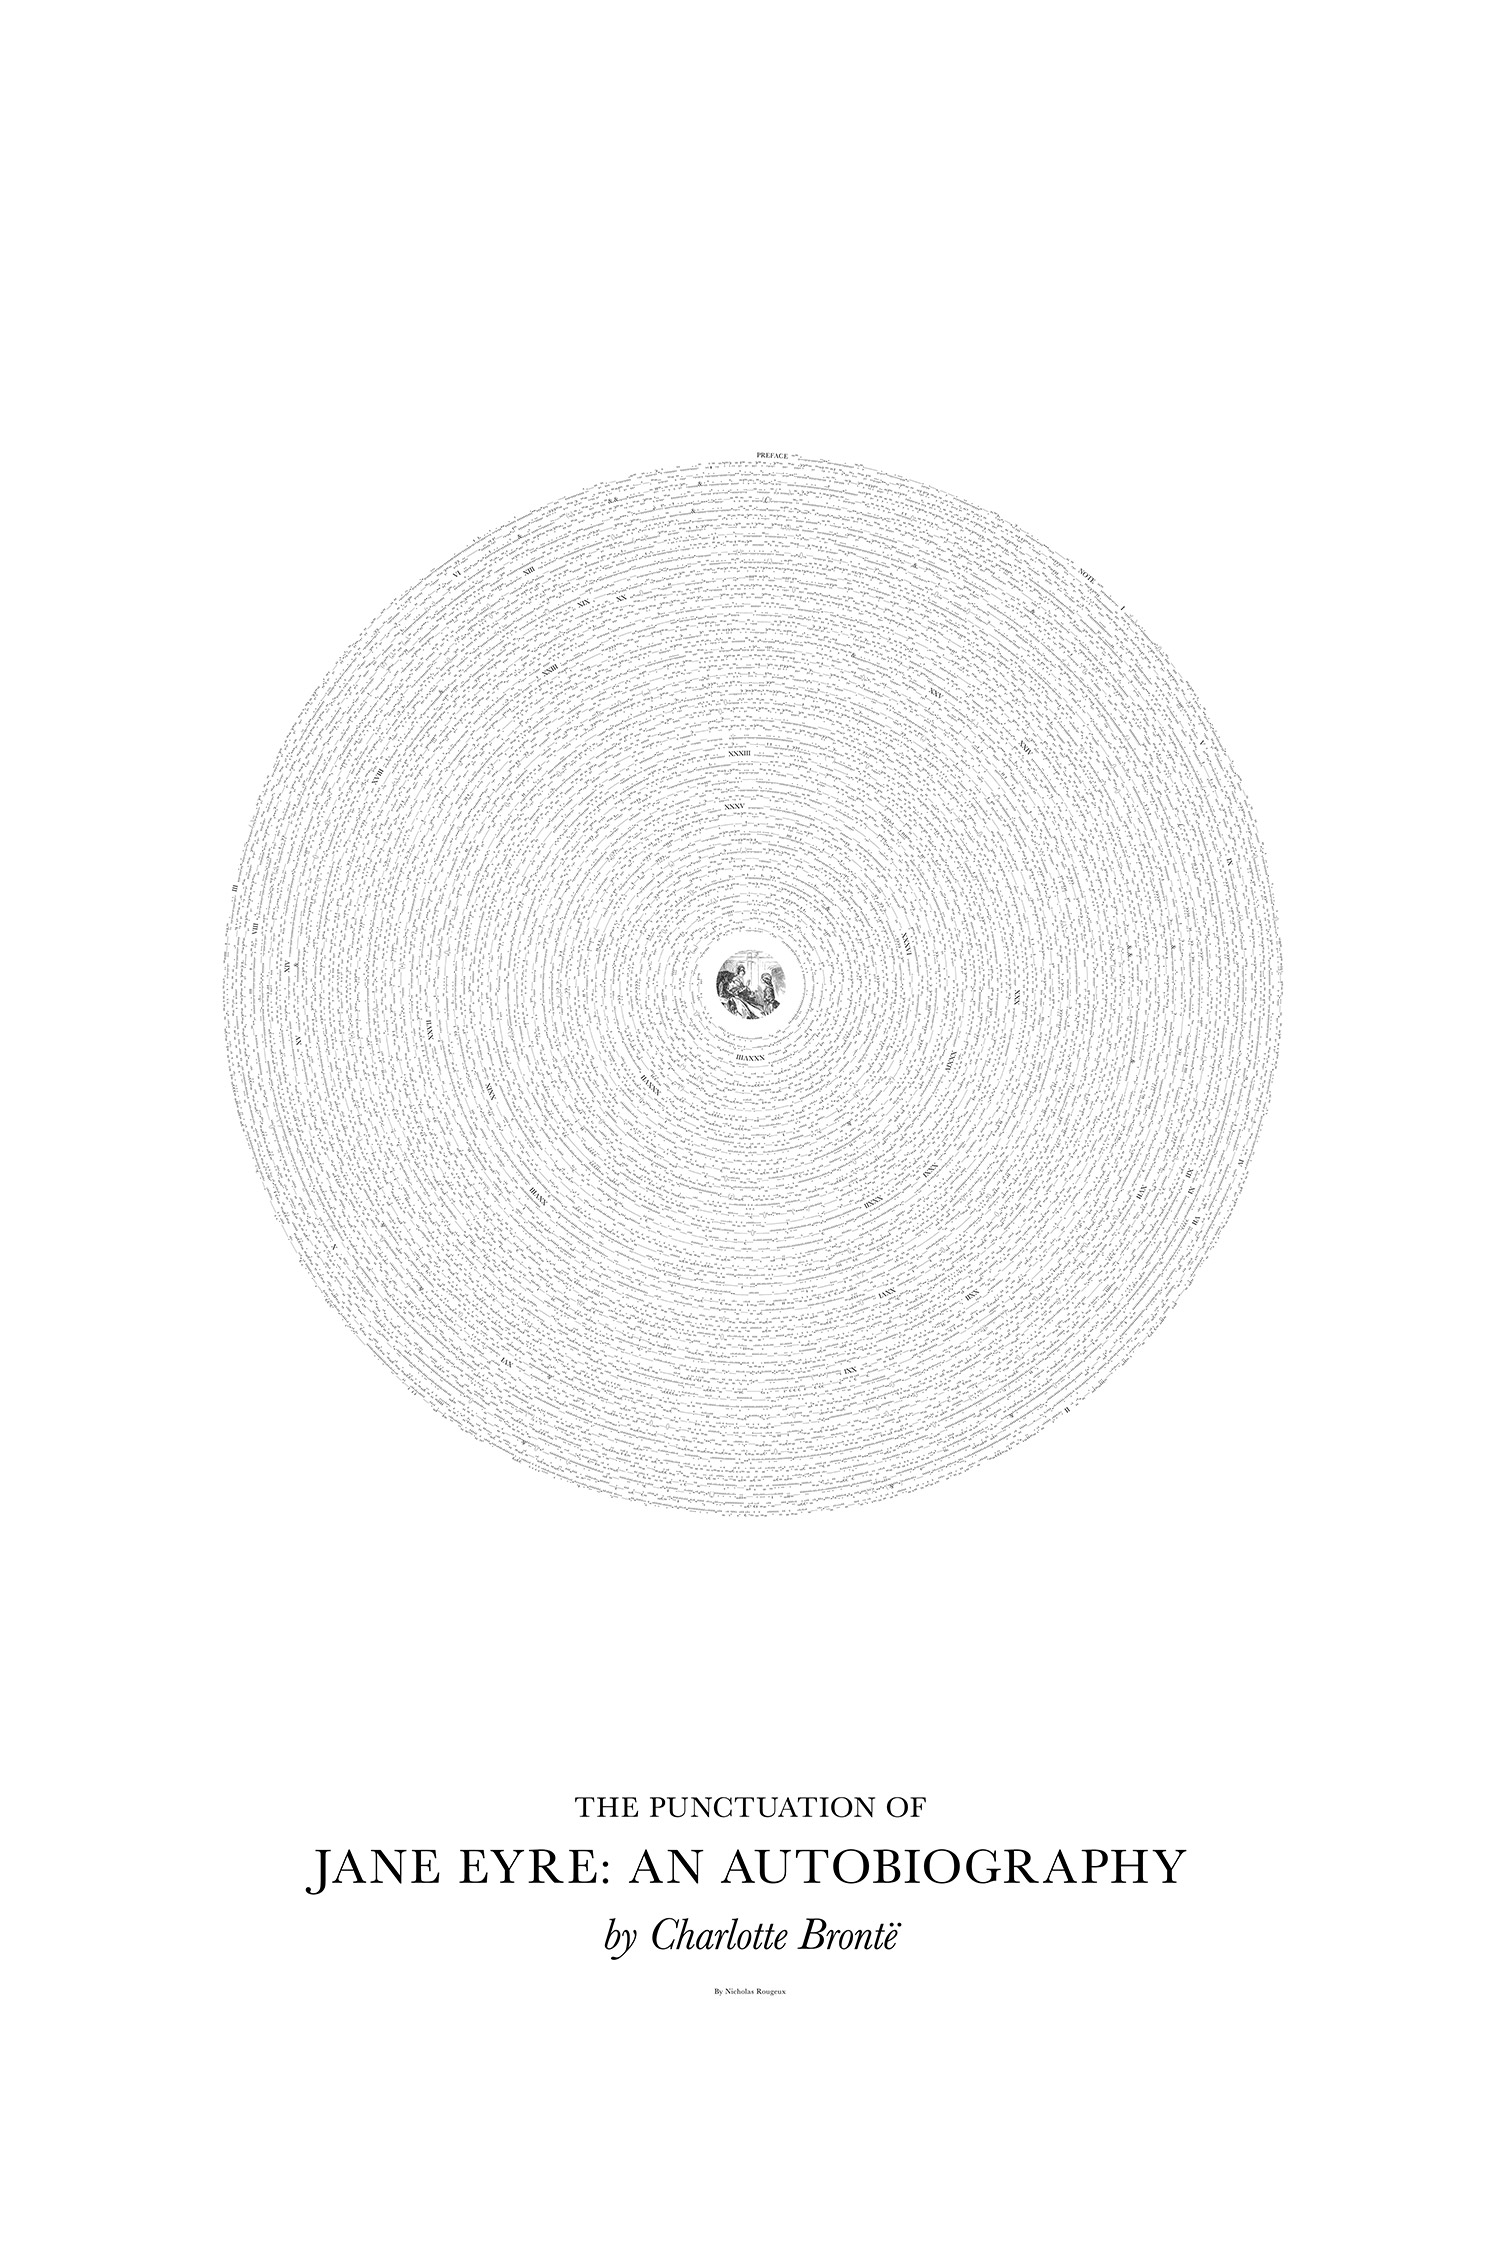 see classic novels visualized no words and punctuation only jane eyre large